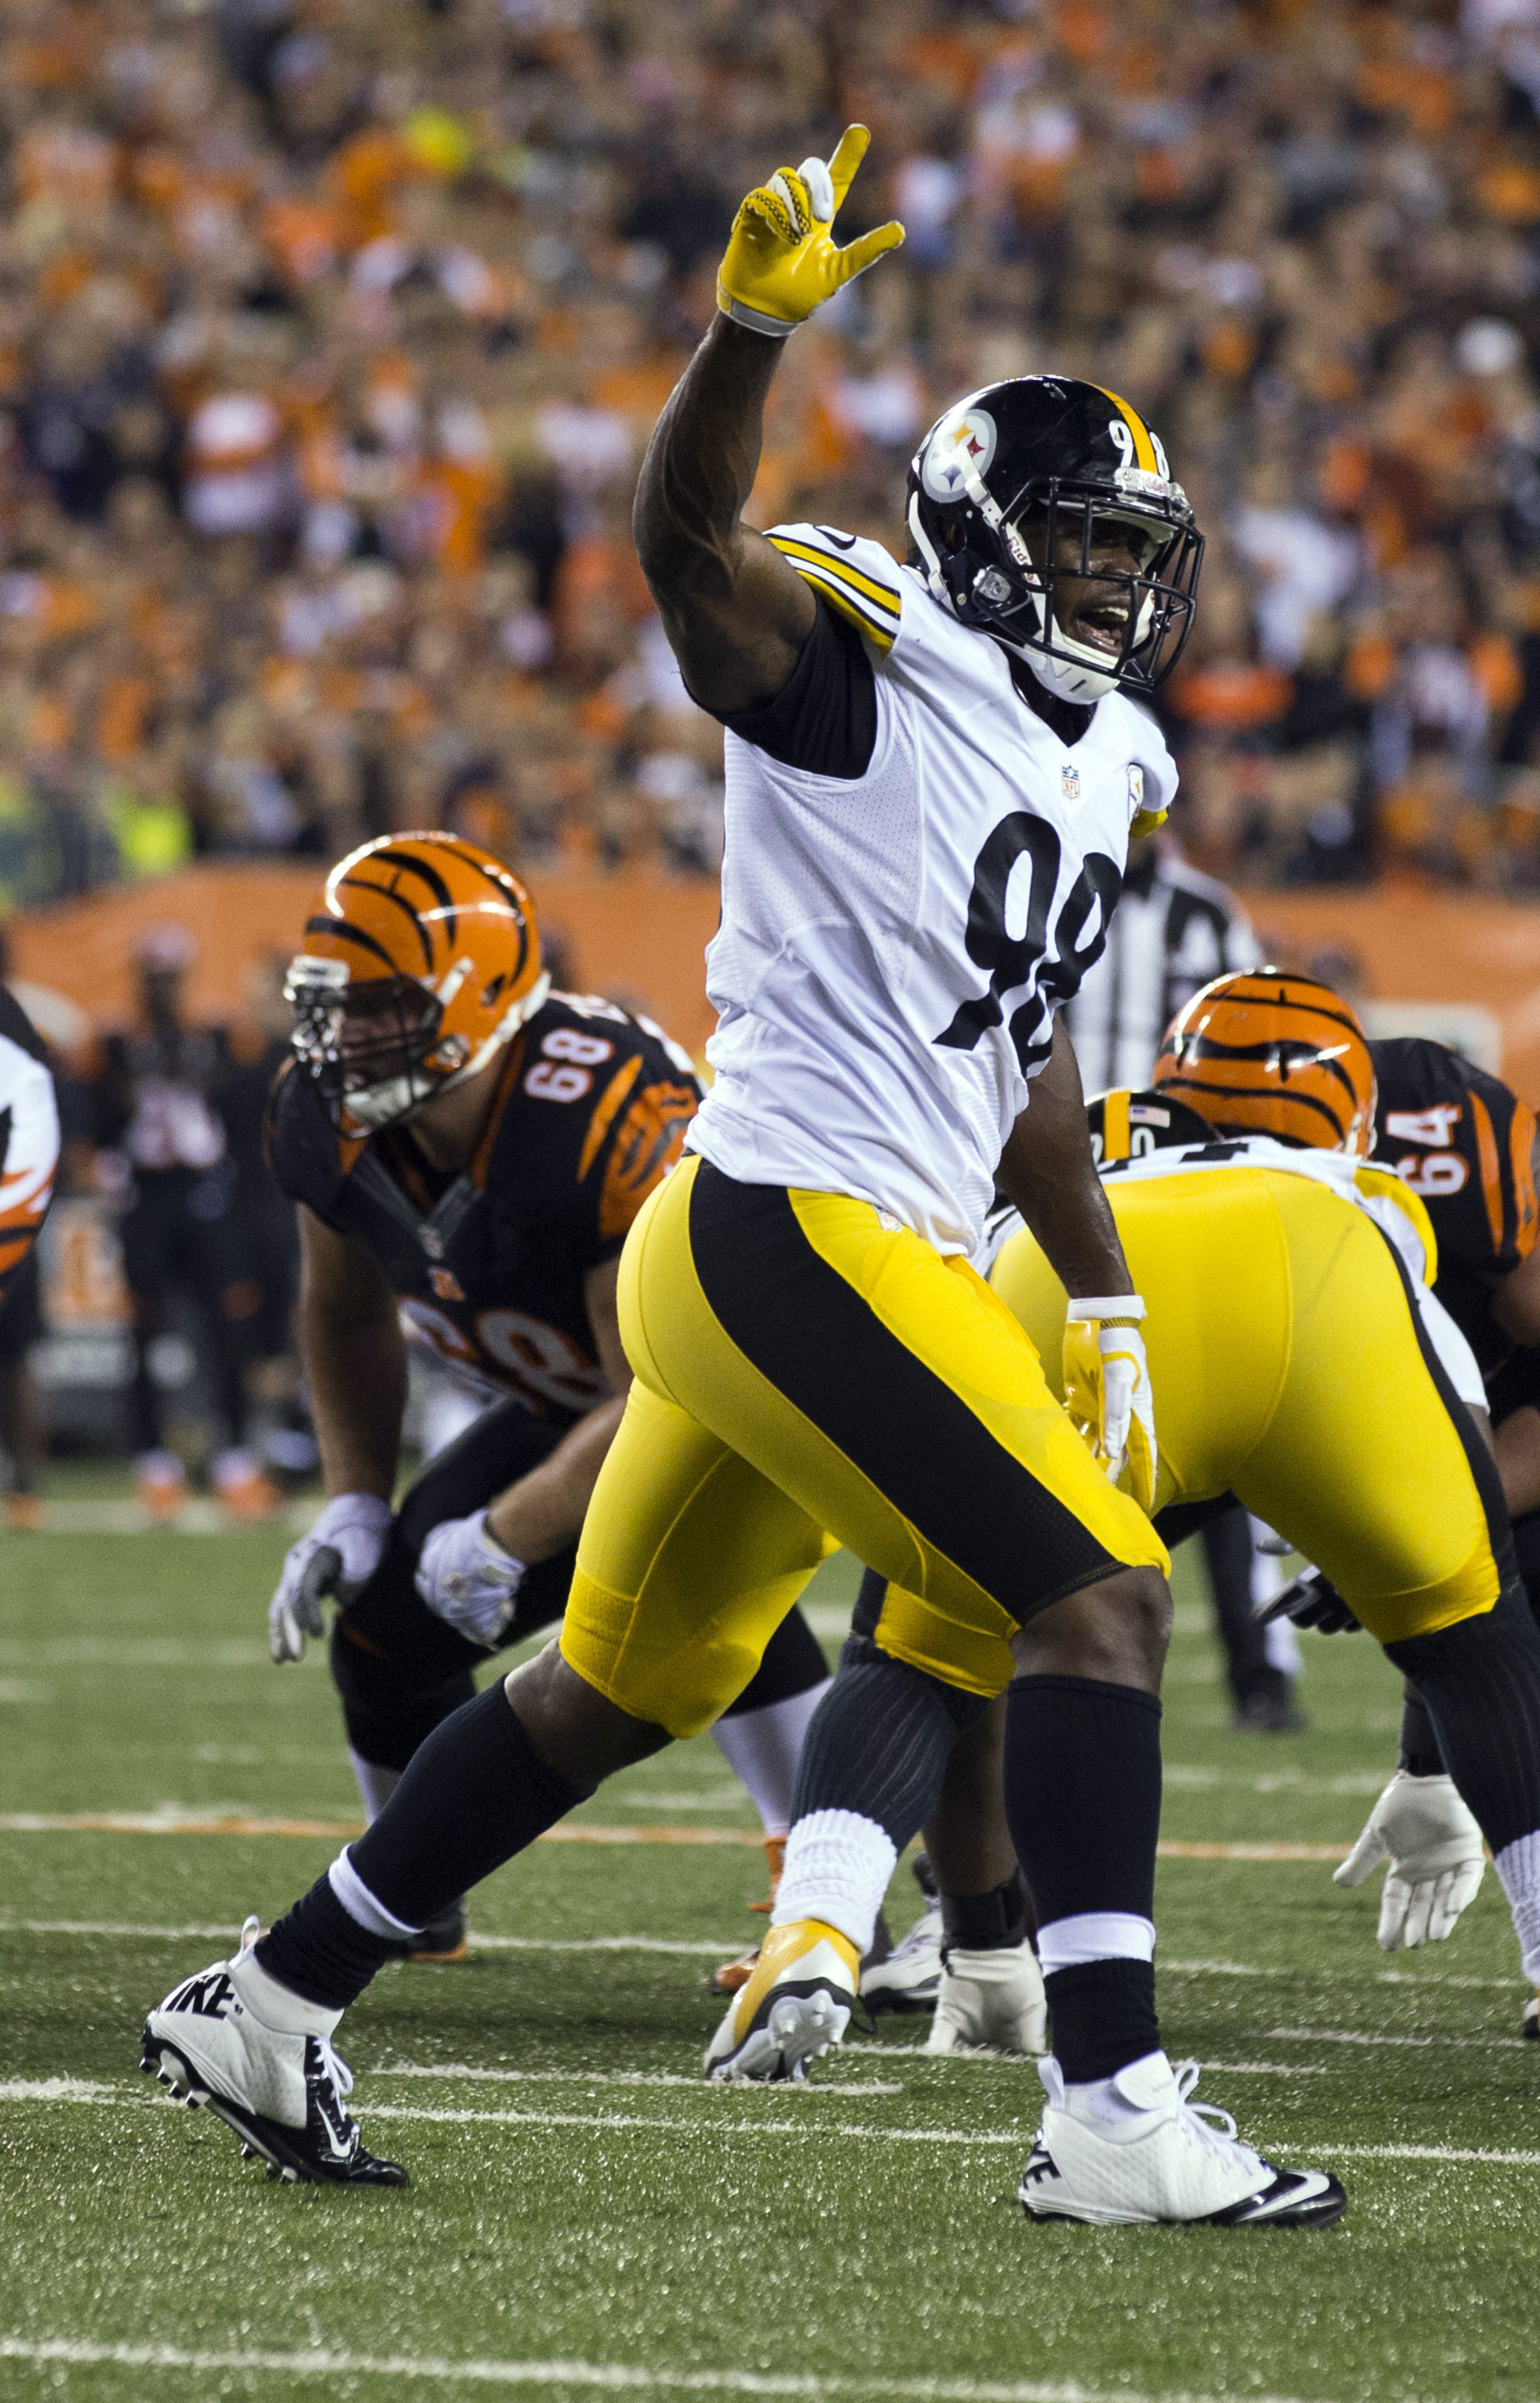 Williams' best asset has been his ability to quickly learn the Steelers' defense and call plays.